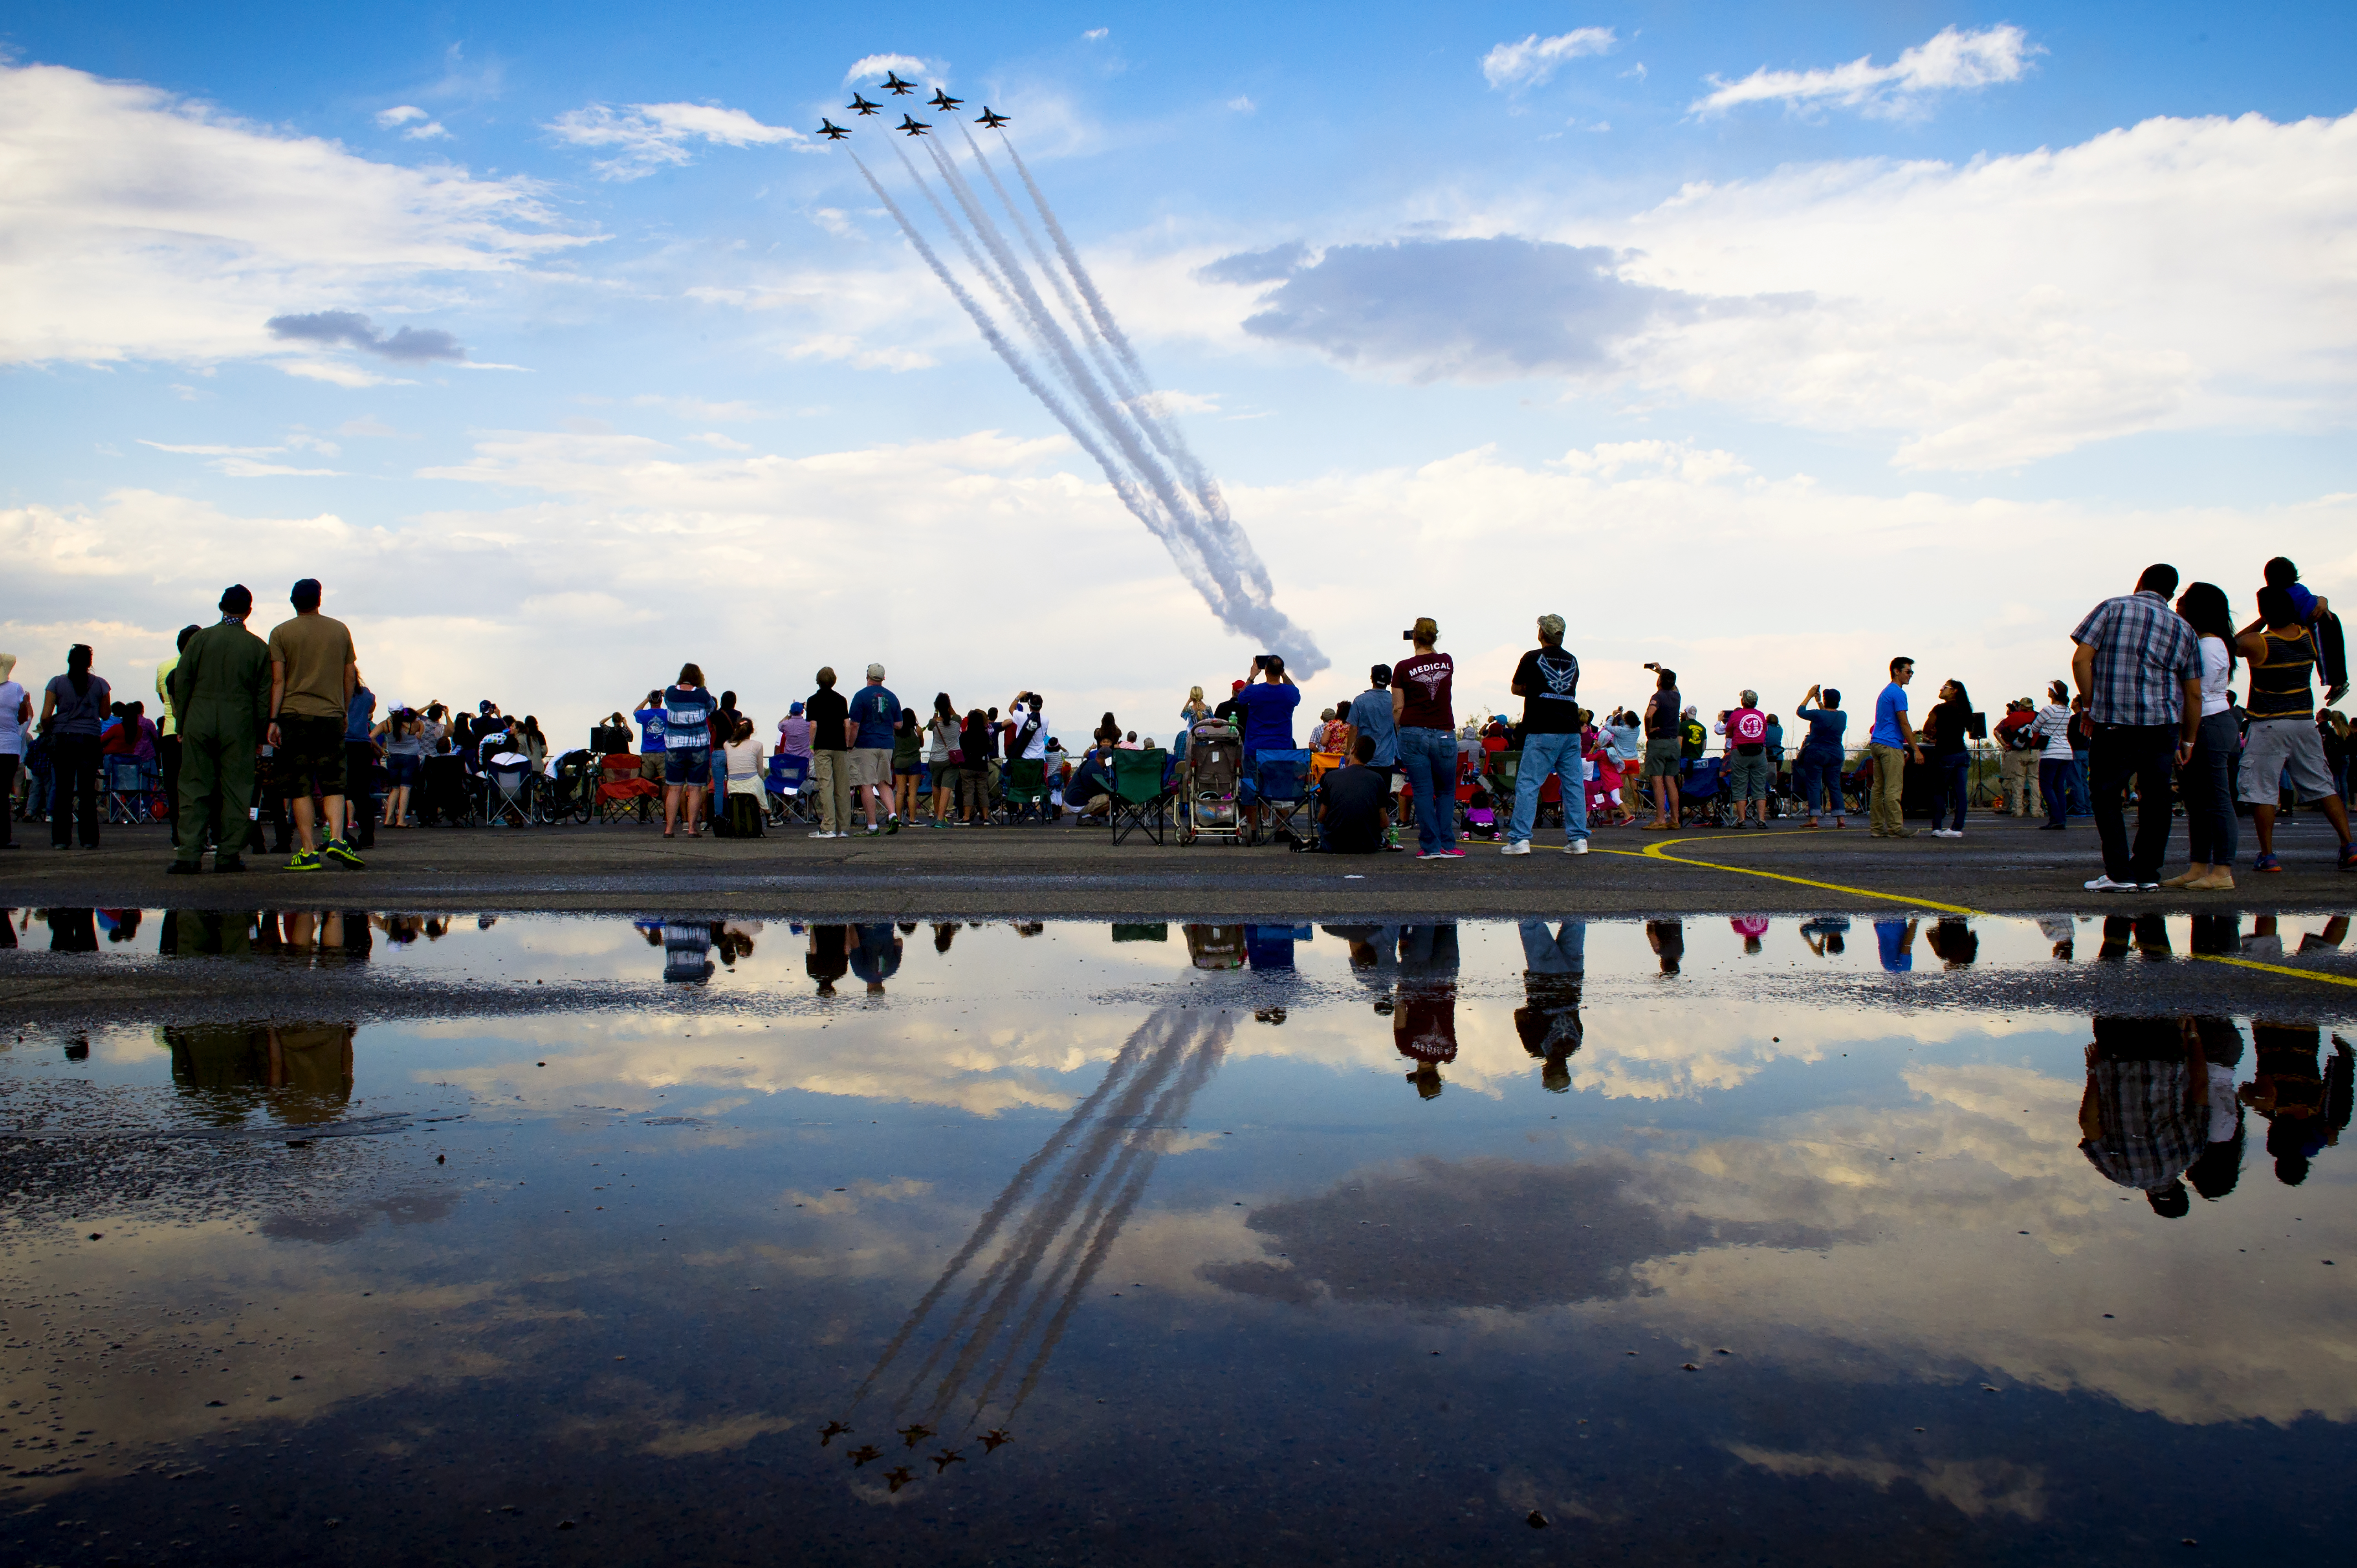 The Thunderbirds Delta Formation perform the Delta Closer during the Amigo Airshow, at Santa Teresa, N.M., Nov. 2, 2014 (U.S. Air Force photo/Tech. Sgt. Manuel J. Martinez)